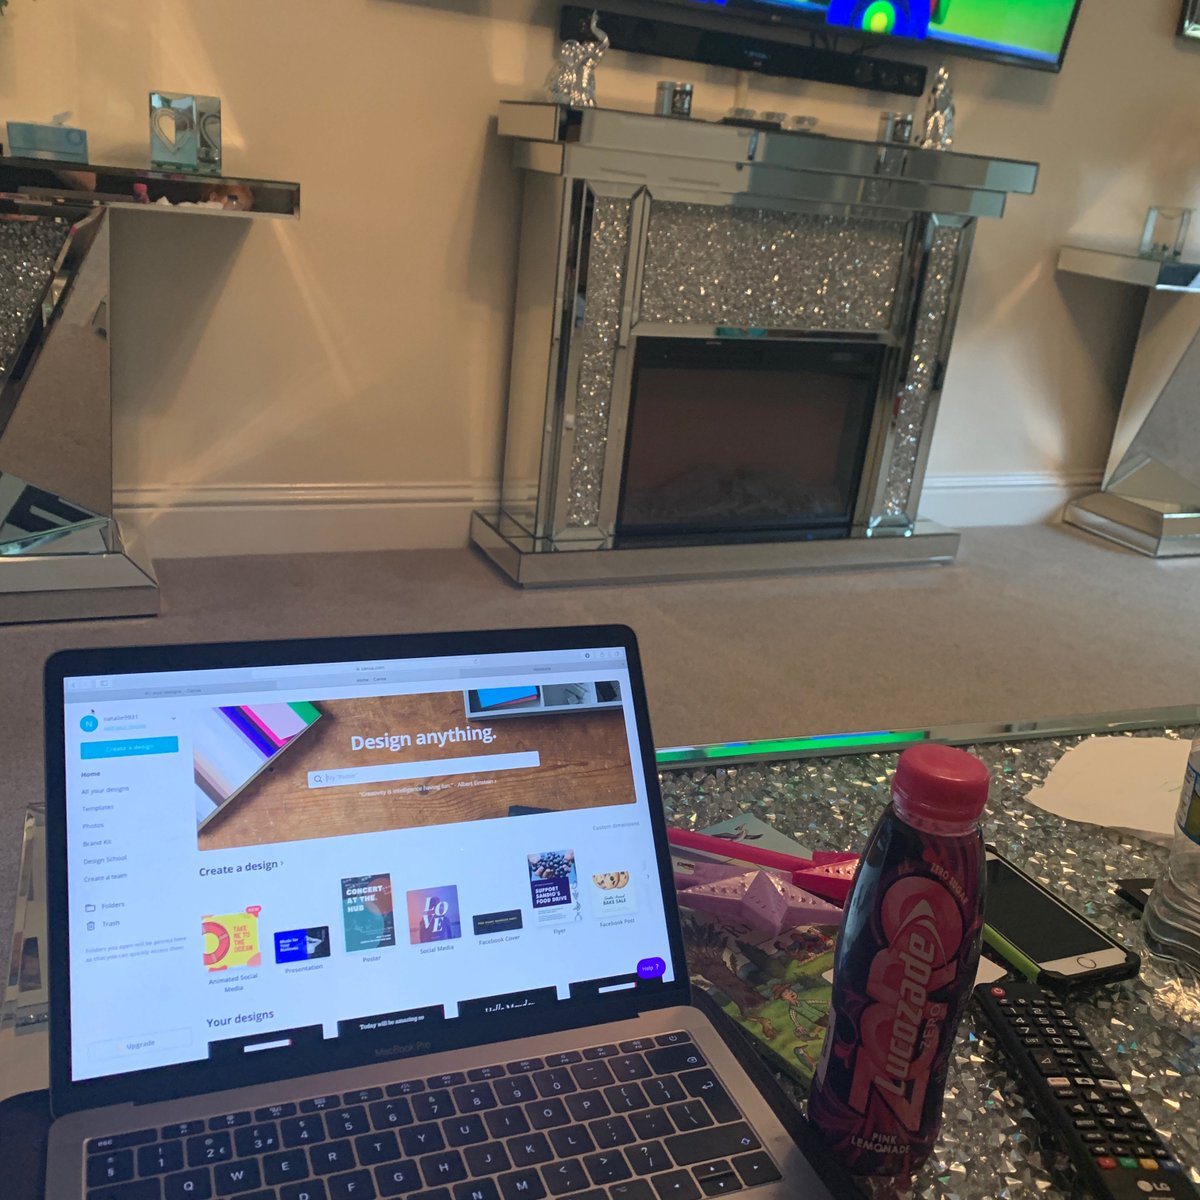 Multi tasking! Social media scheduling and nursery rhymes with my youngest daughter #socialmedia #planning #workingmumof3 #homelifebalance #hootsuite #canva #netflix #multitaskingpic.twitter.com/dqvyKEt2cZ